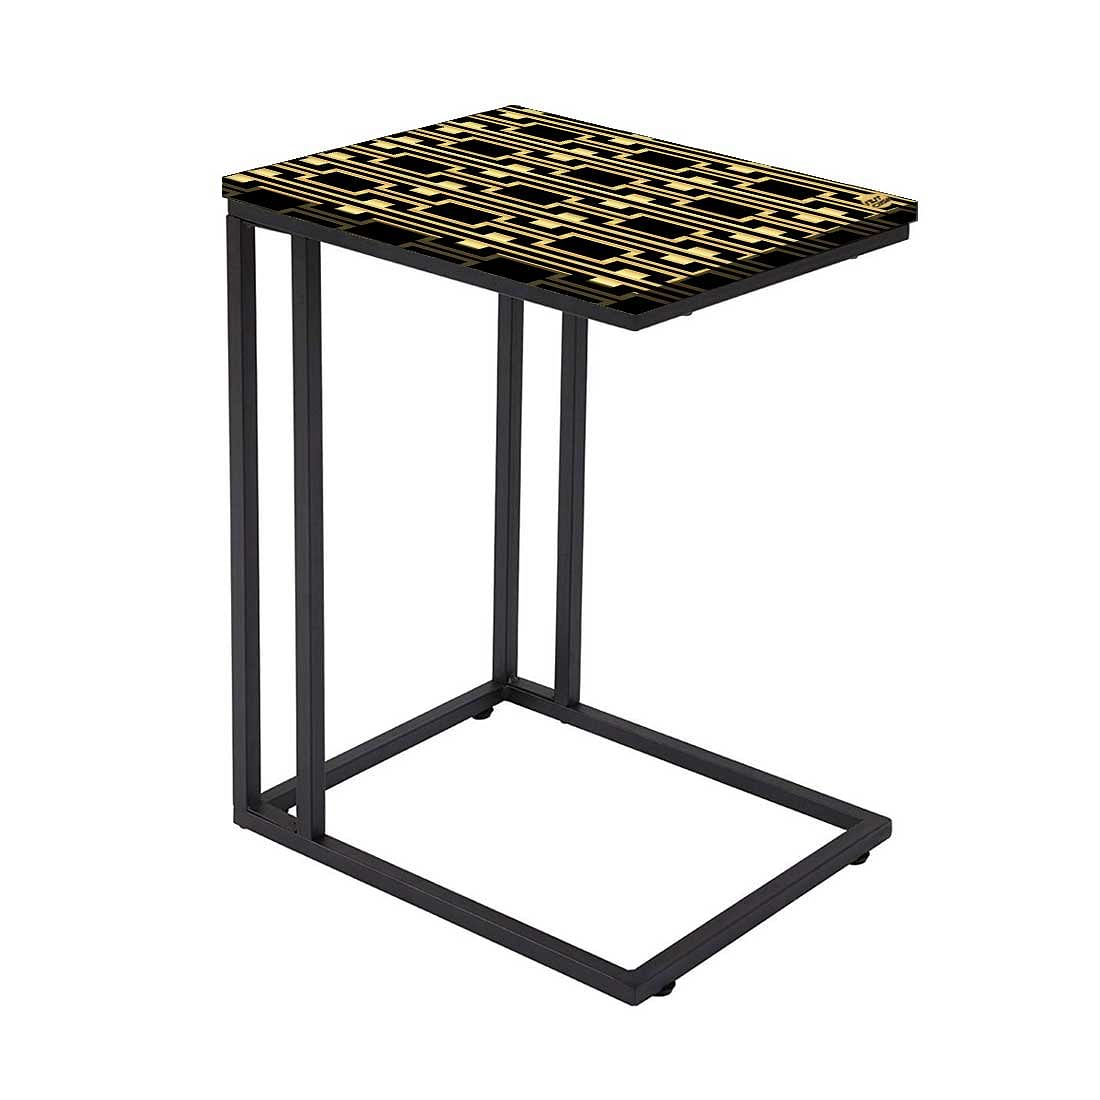 C Shaped End Table For Sofa